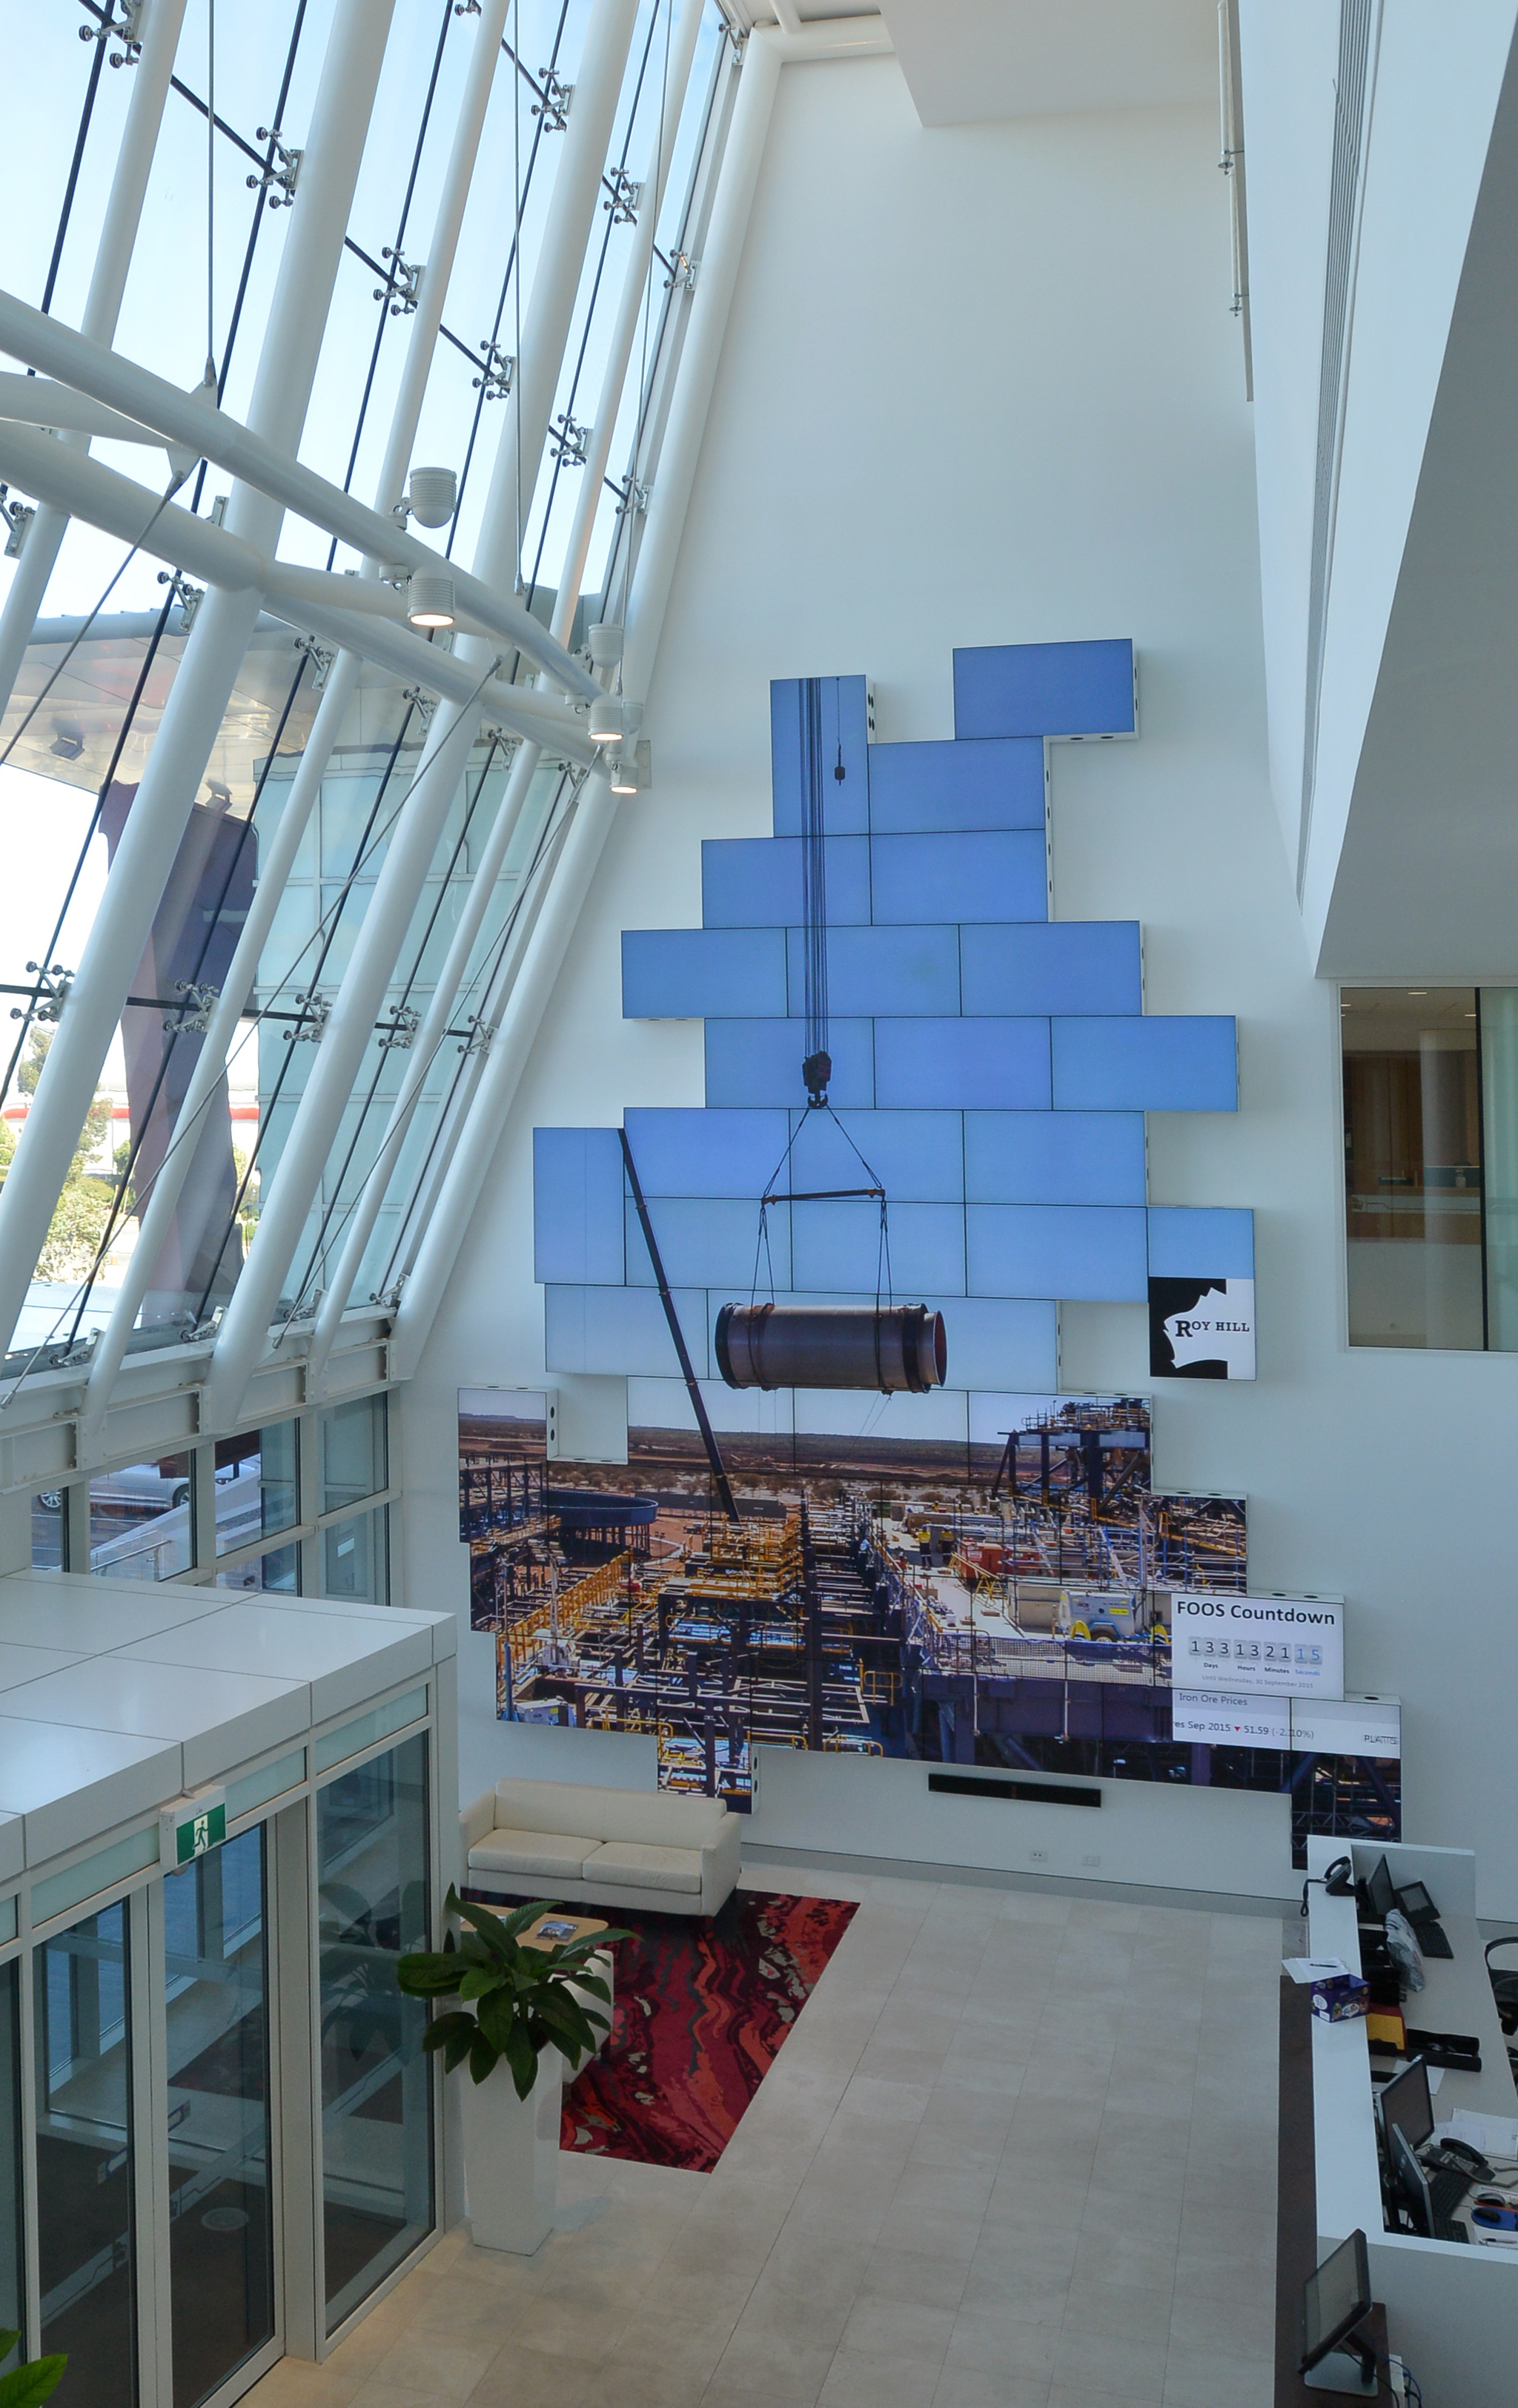 Roy Hill video wall